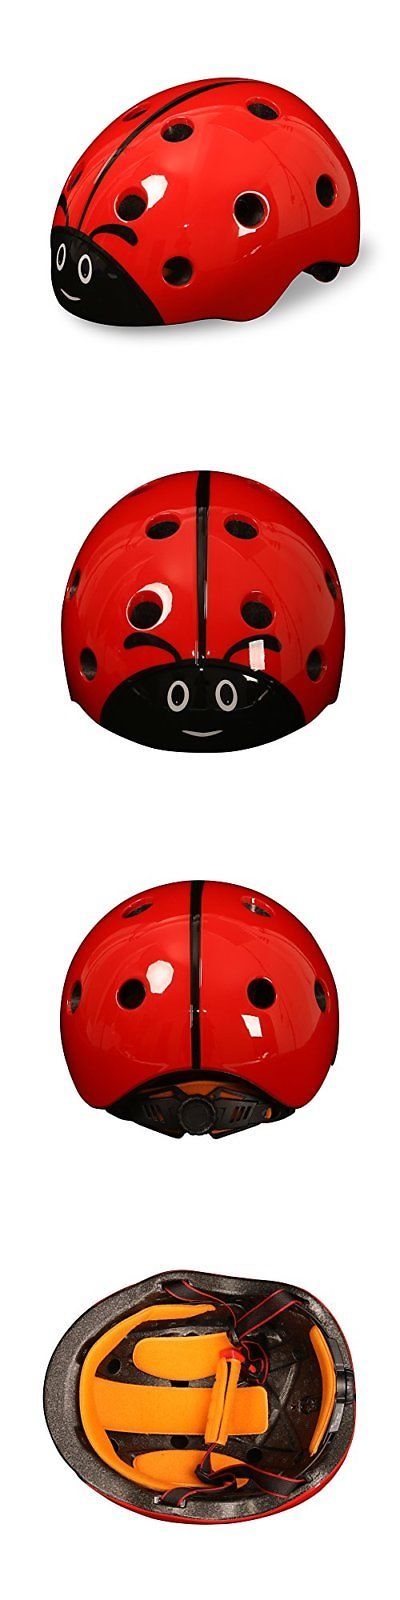 Hats and Headwear 62175: Kids Child Helmet Girls Boys Skiing Cycling Snowboard Bike Safety Ladybug Cute -> BUY IT NOW ONLY: $37.85 on eBay!